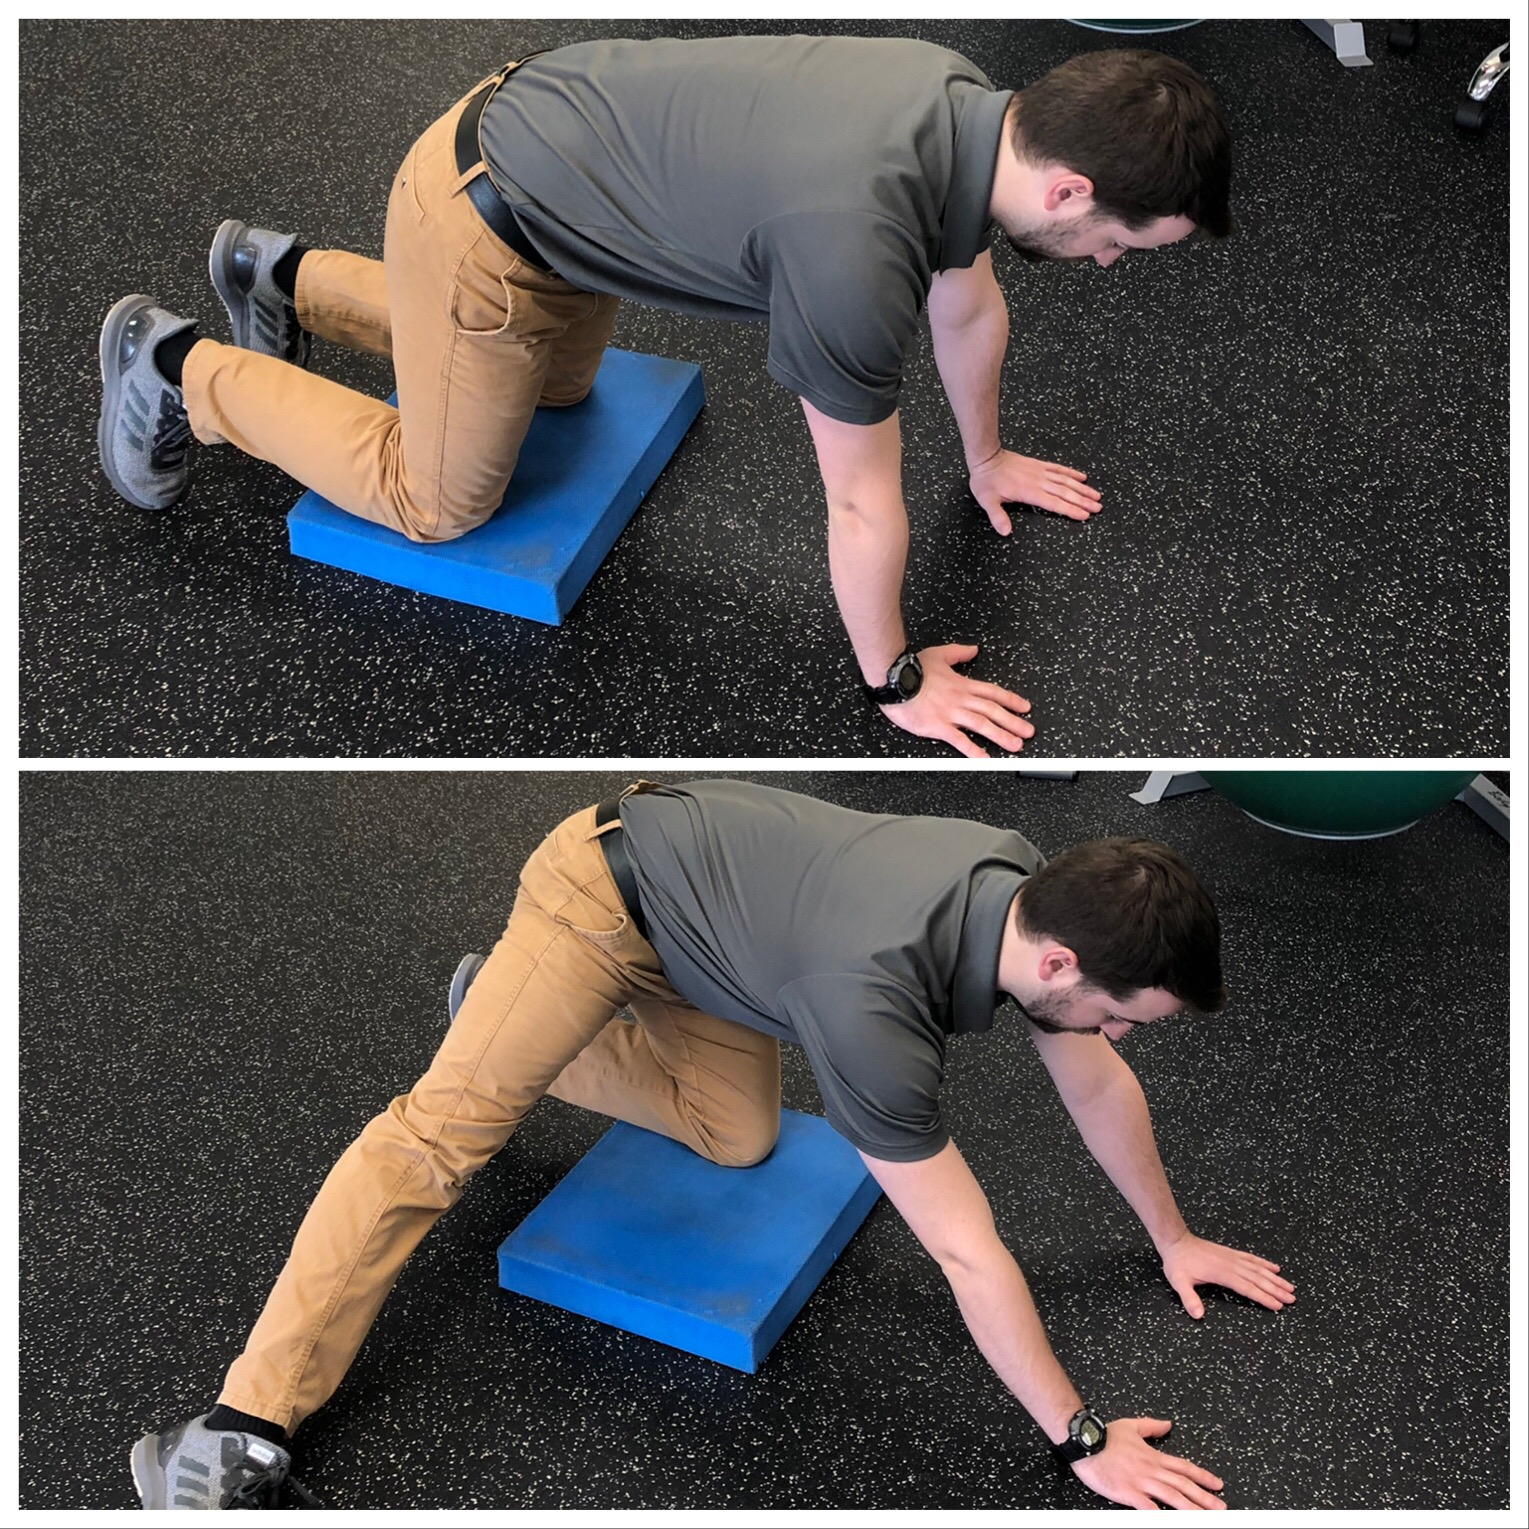 Injury prevention is a continuous process that should take place leading up to the season, throughout the season, and after the season. Each phase is unique in its focus, but all have the common goal of keeping the player on the ice and healthy.  At  Complete Game Physical Therapy , injury prevention is one of our primary goals. We provide injury prevention screens to ensure that your body is moving properly and efficiently. With the results of the screen, we are able to provide you with a set of corrective exercises to improve your mobility and keep your body moving the way it should and you or your player out on the ice.  If you are are interested in an injury prevention screen or have any questions, please contact us at 978-710-7204 or via email at  alevanti@completegamept.com . For video demonstrations of most of the above exercises please check out our Tip Tuesday YouTube Channel by typing Complete Game Physical Therapy into the YouTube Search Bar.